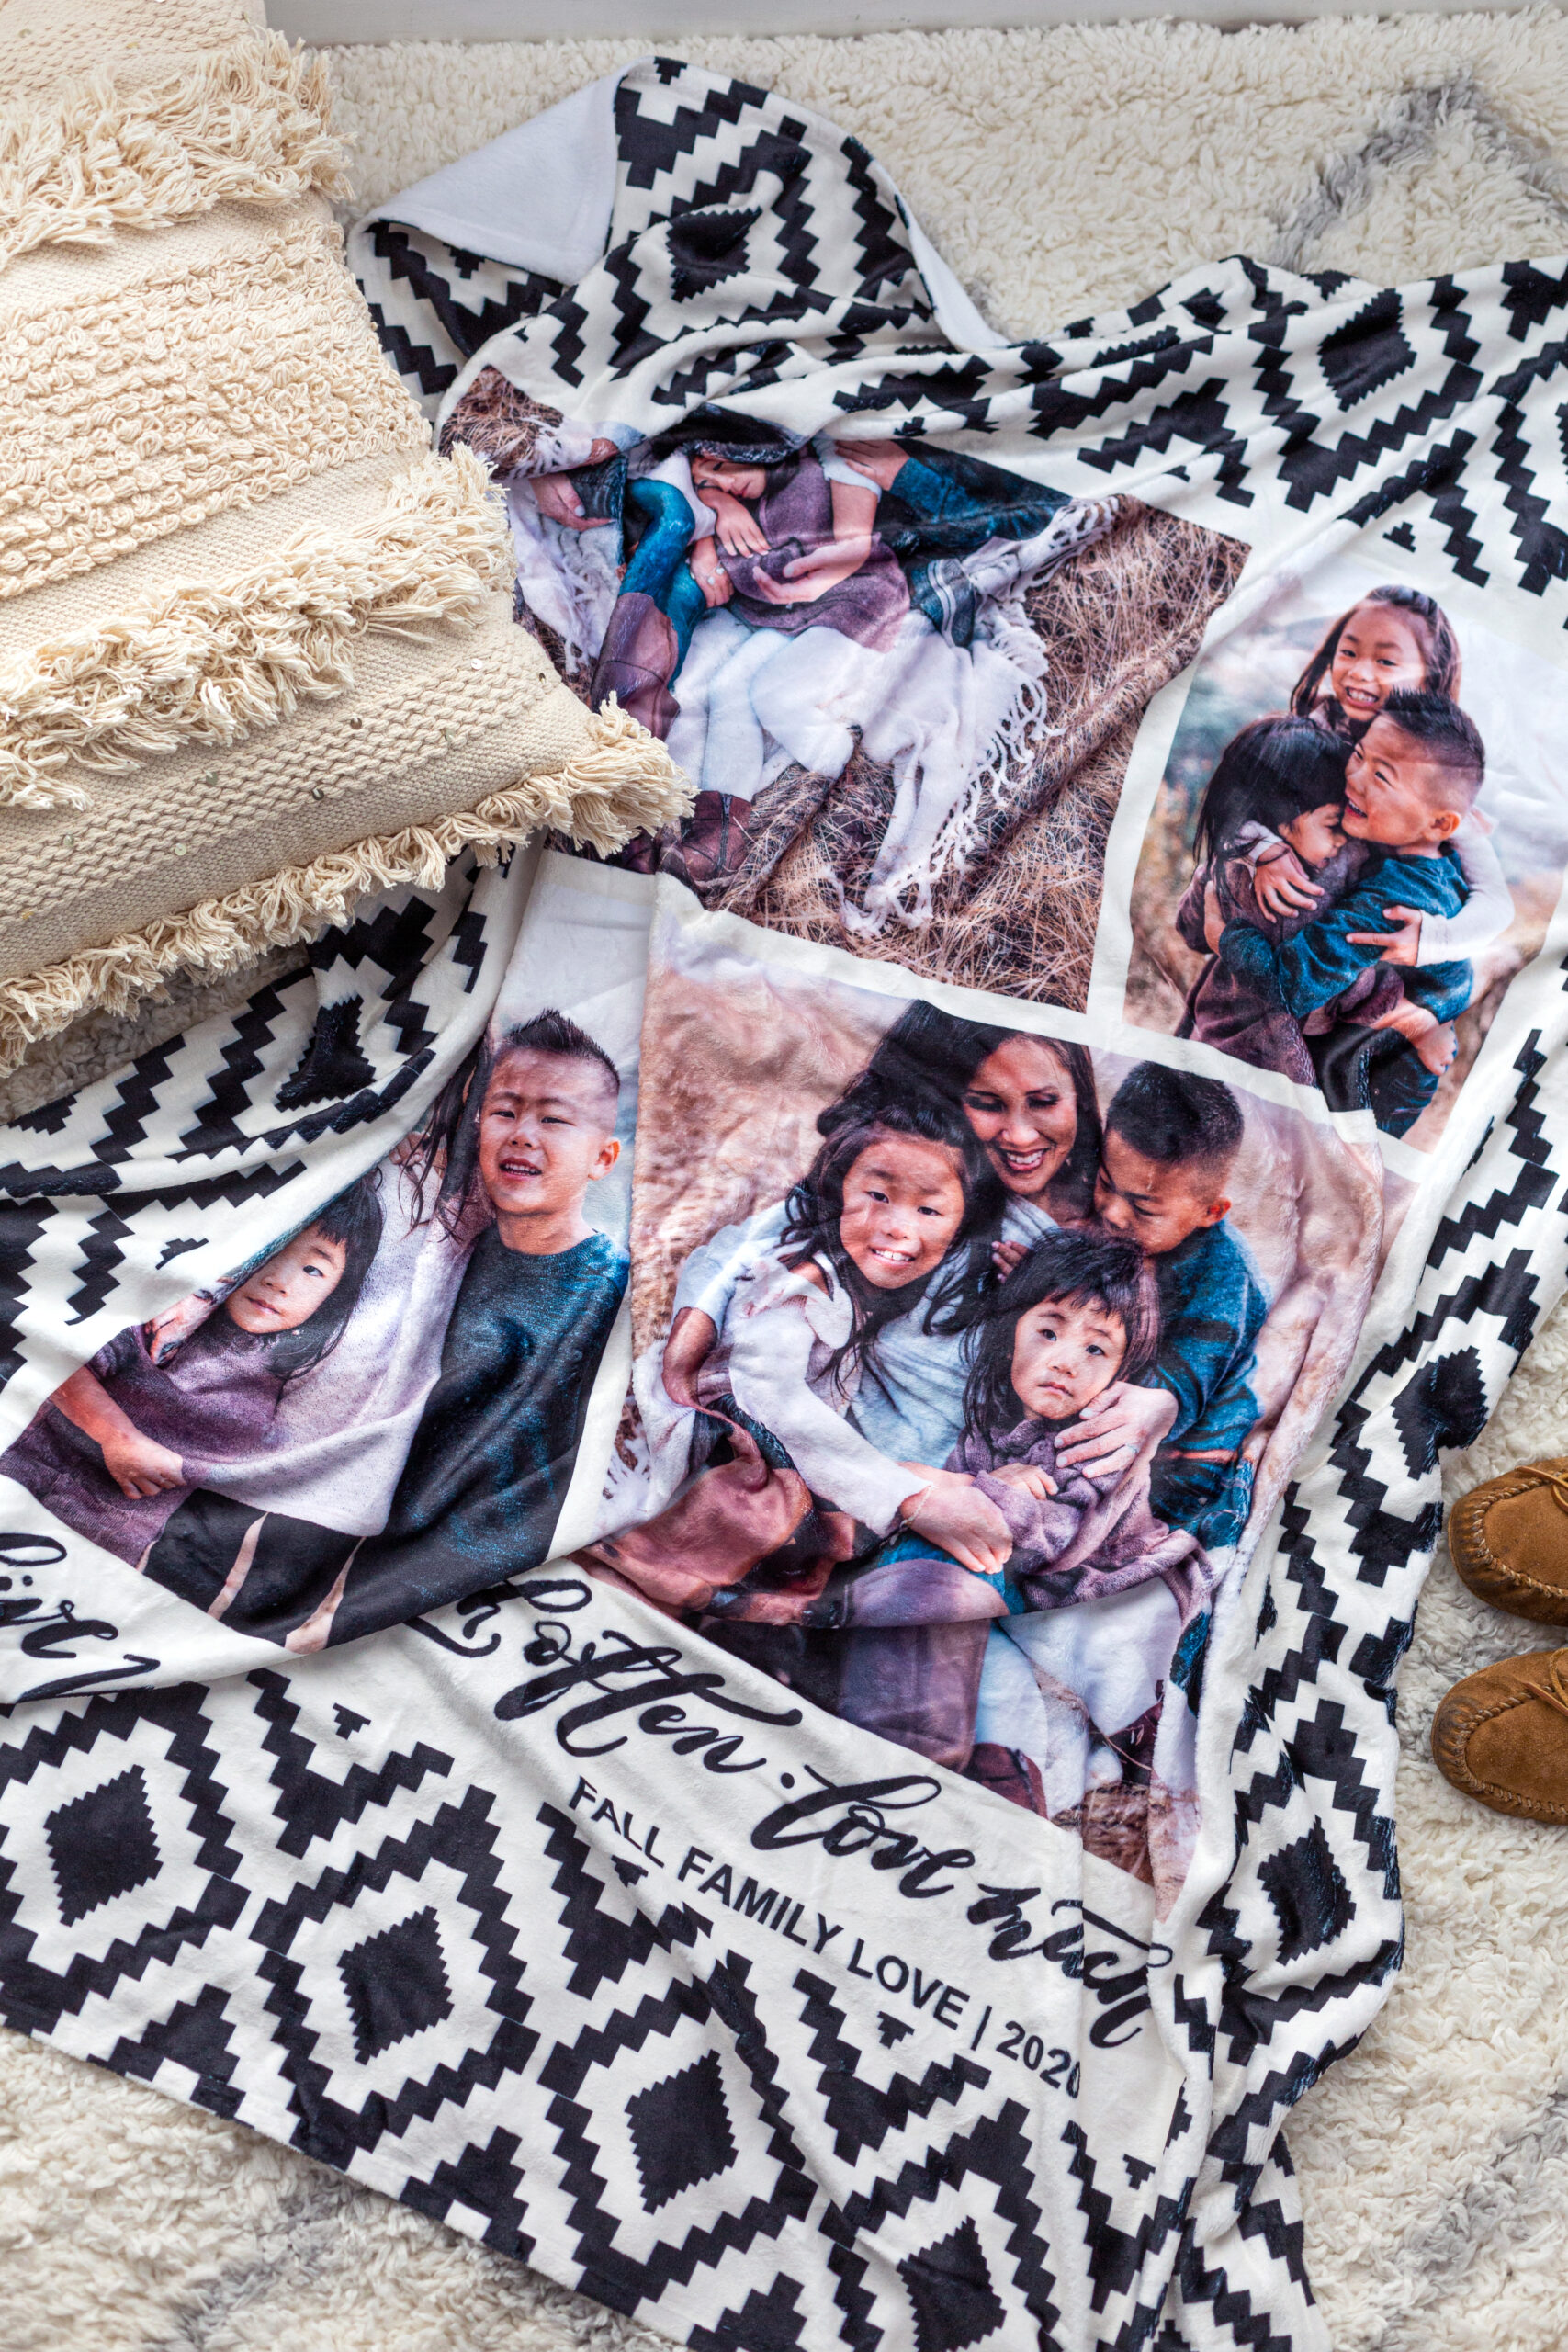 Photo blankets and gifts for everyone